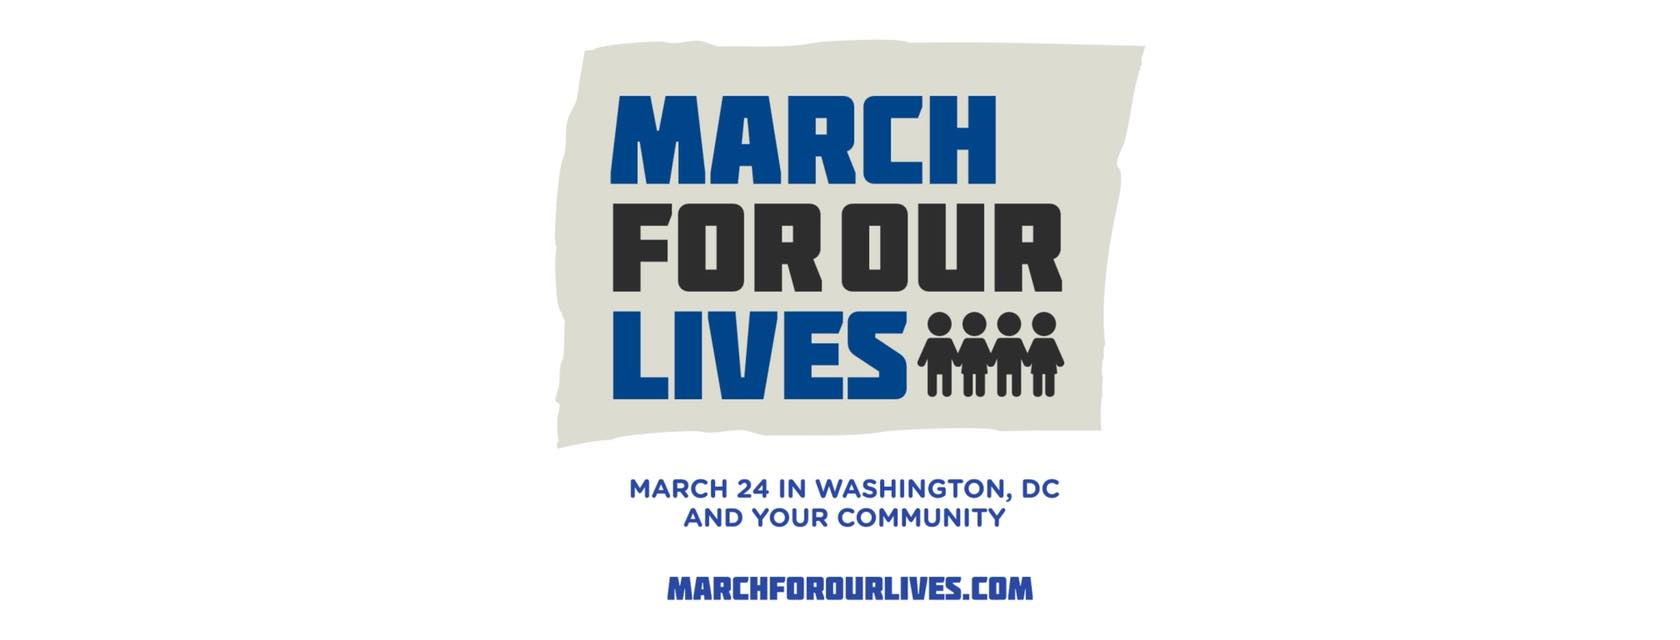 march for our lives DC info